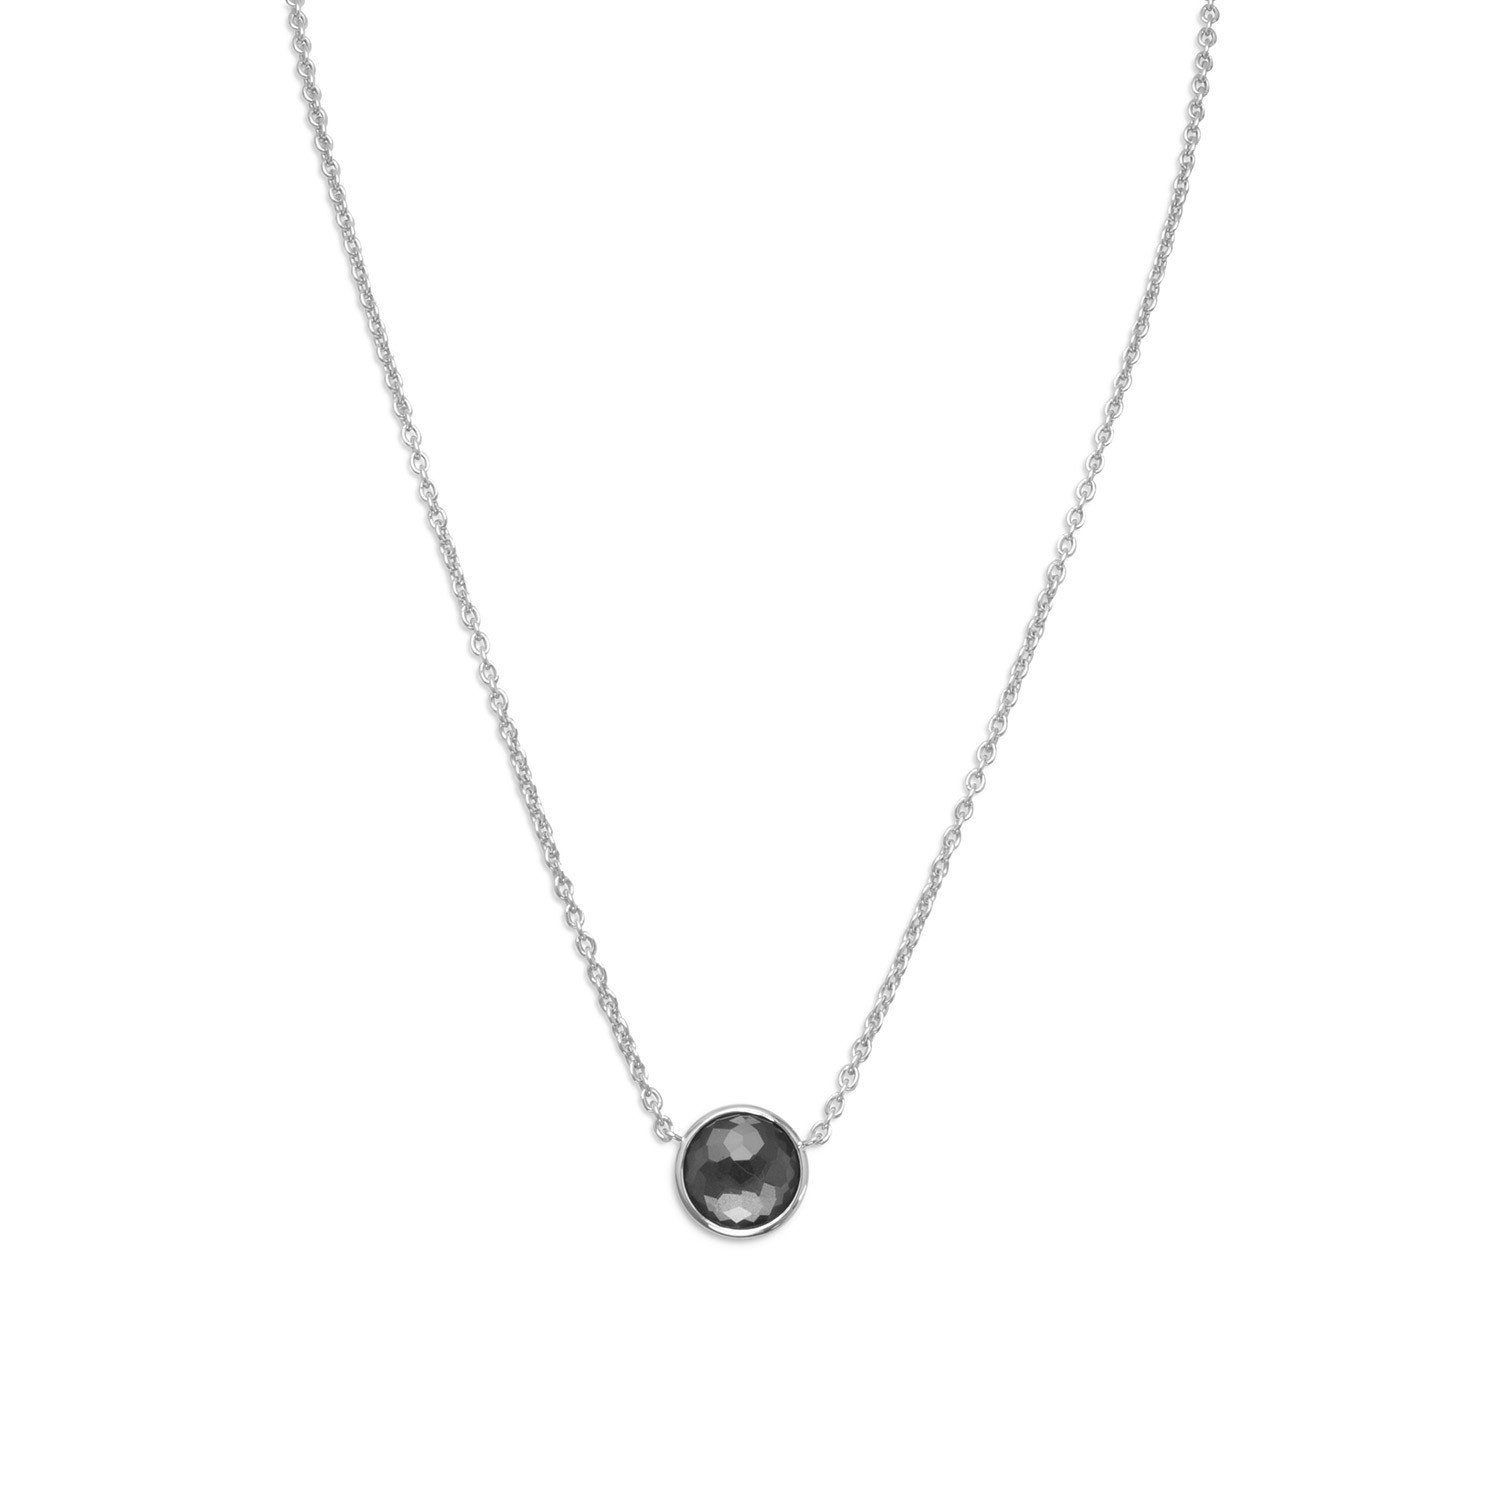 16″ + 2″ Rhodium Plated Round Freeform Faceted Quartz over Hematite Necklace